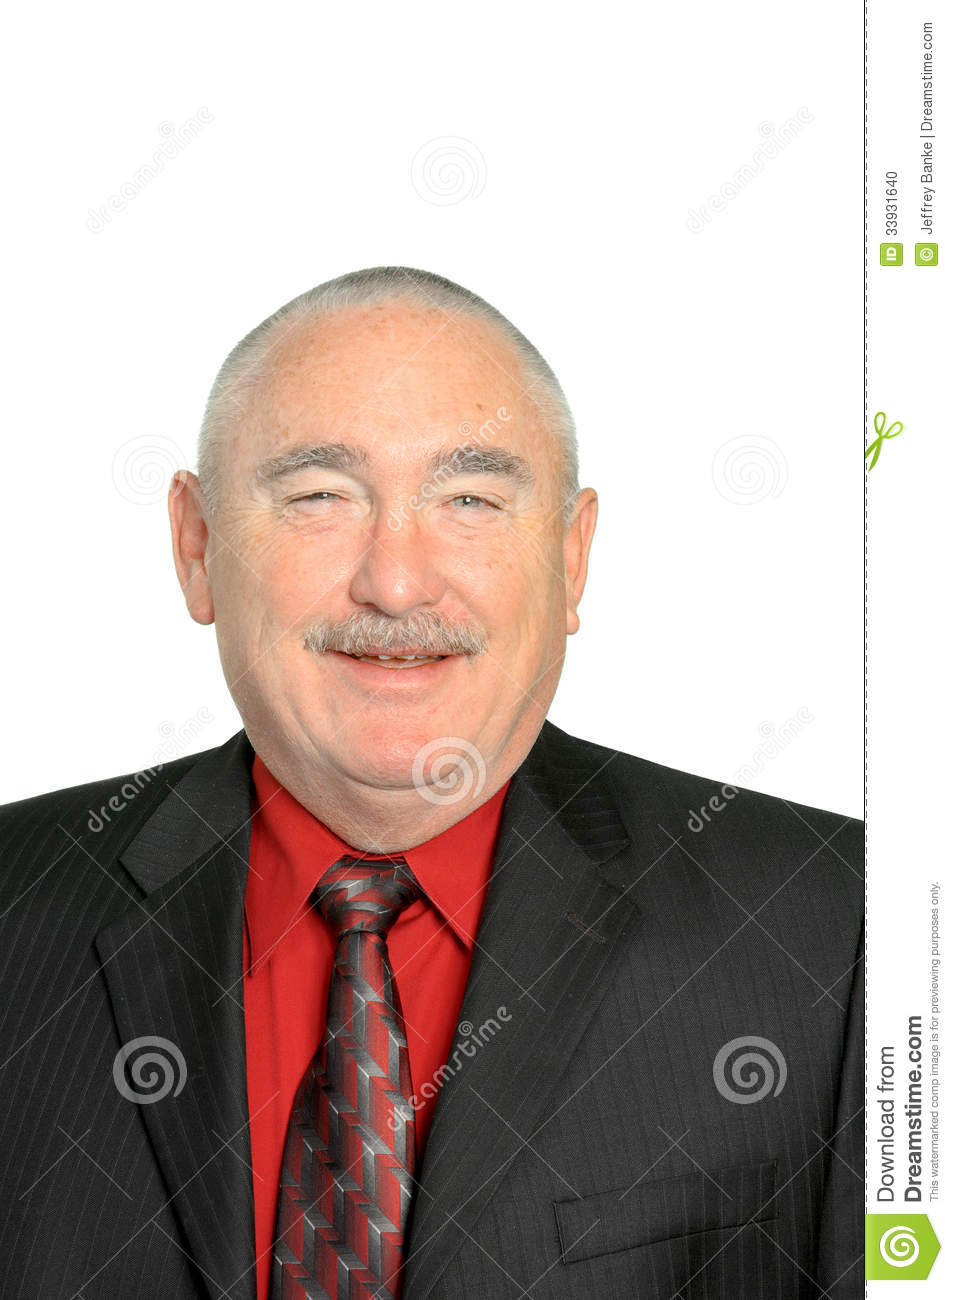 Smiling Businessman Stock Photo - Image: 33931640